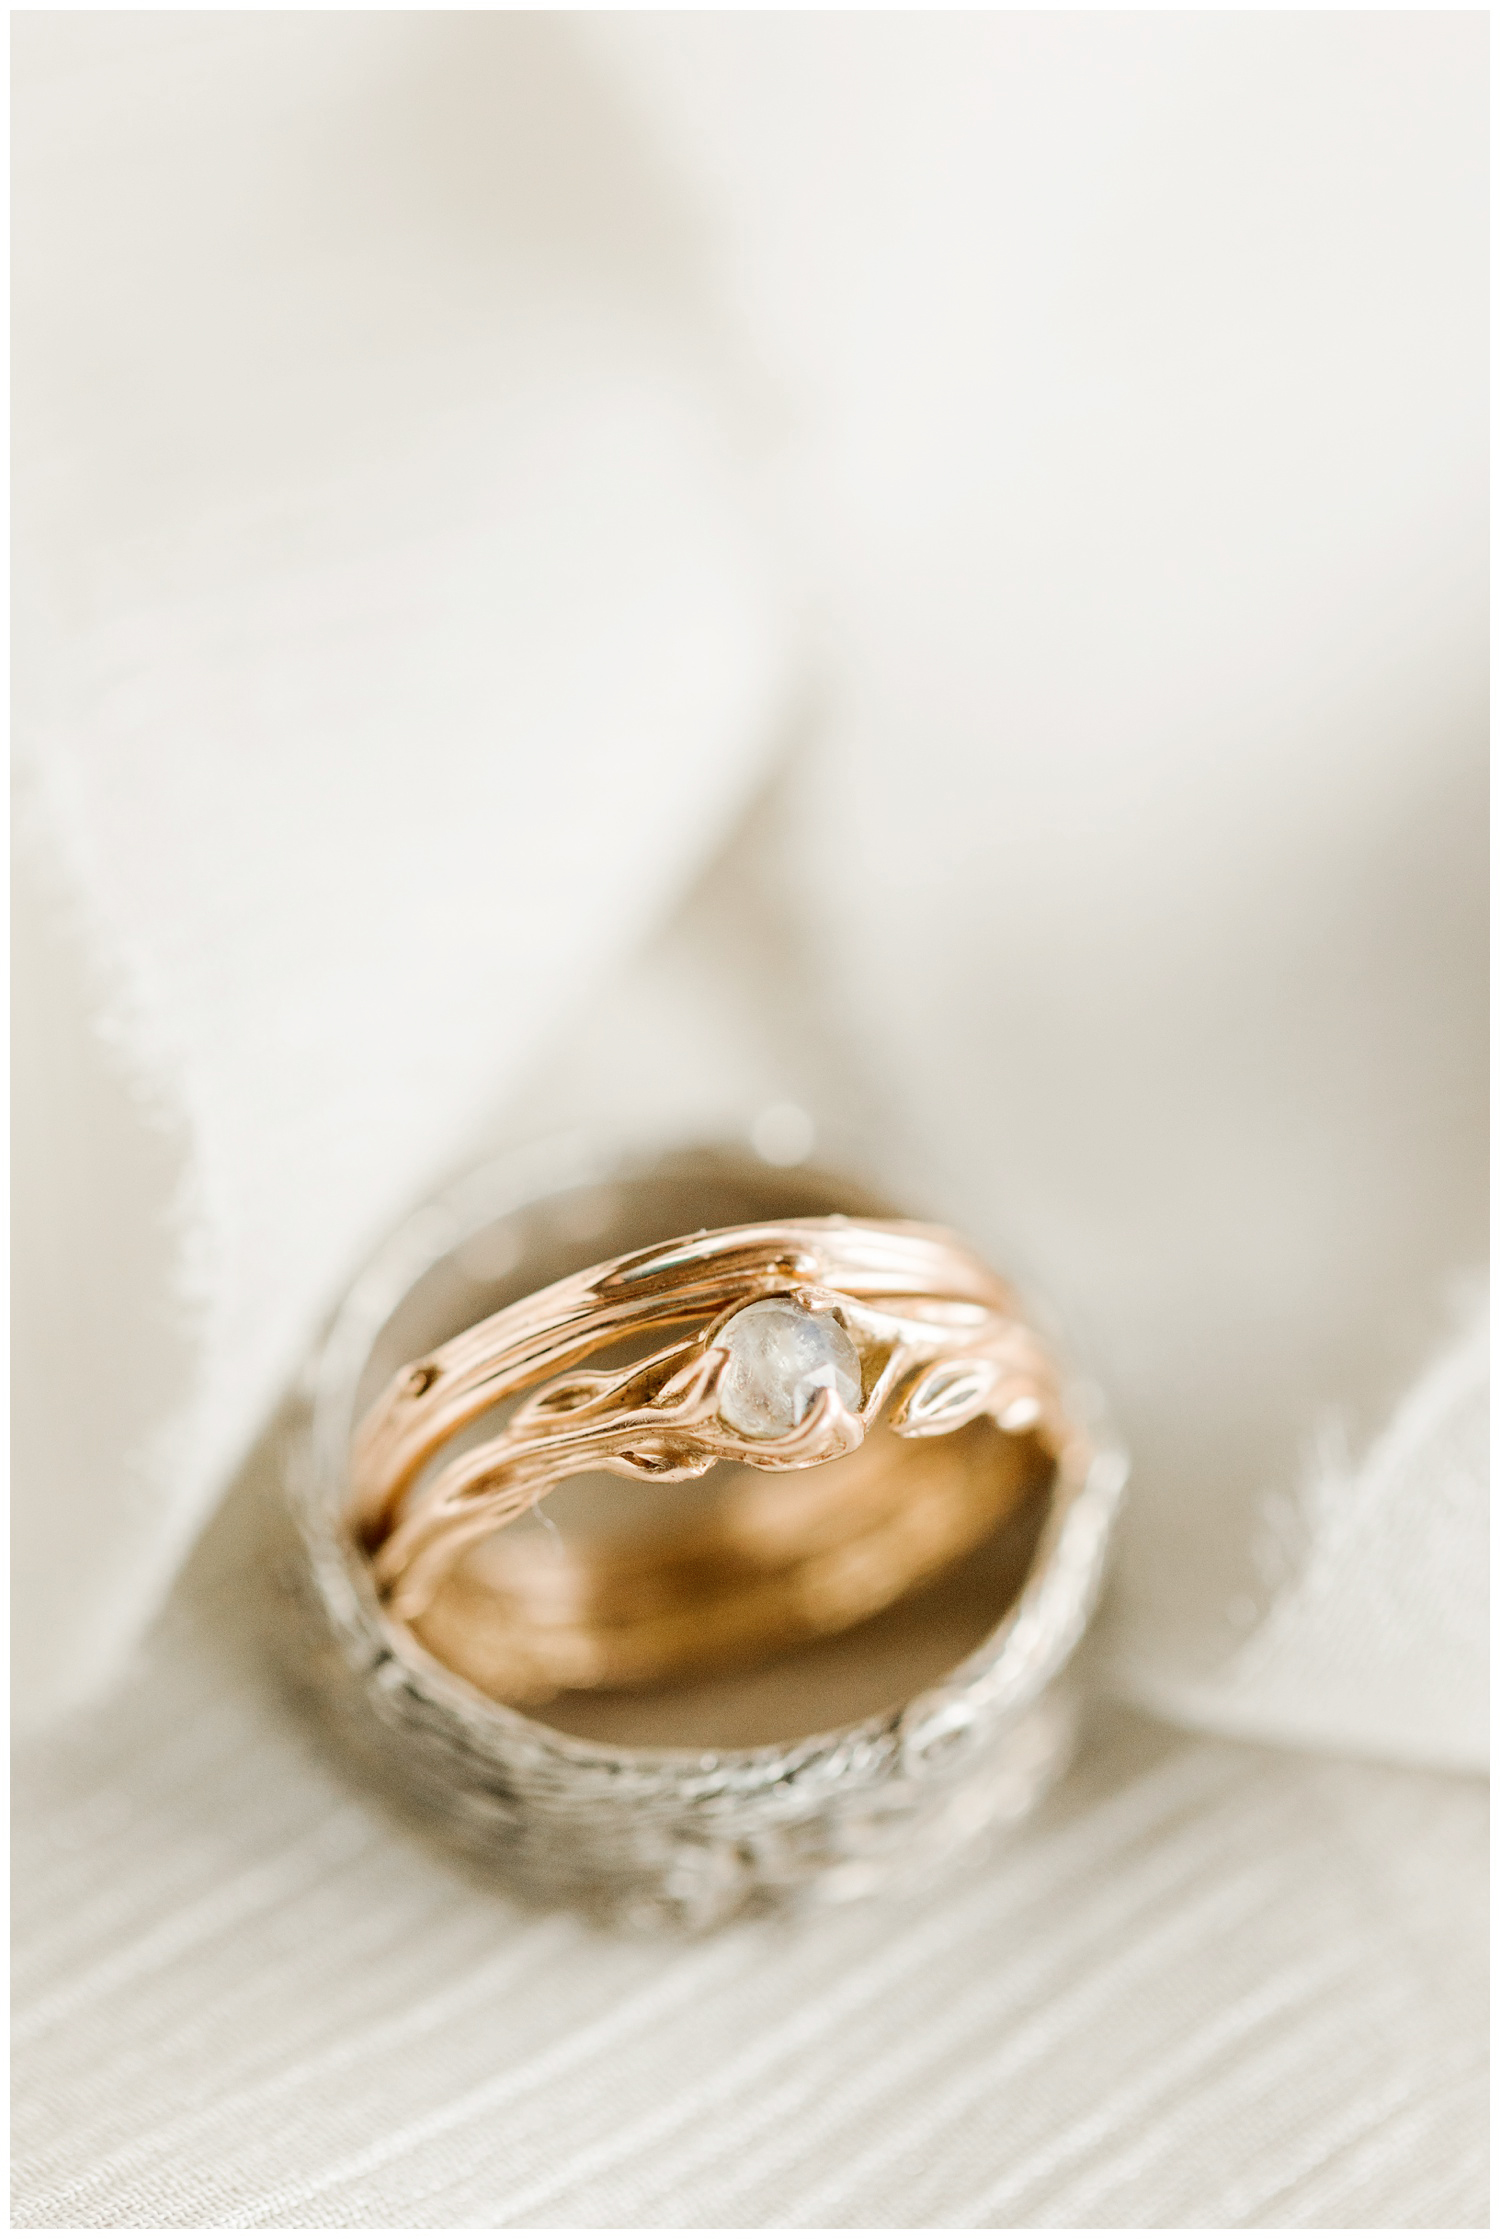 Hippie unity wedding band featuring a rose gold twig and leaf band and a center moonstone   CB Studio